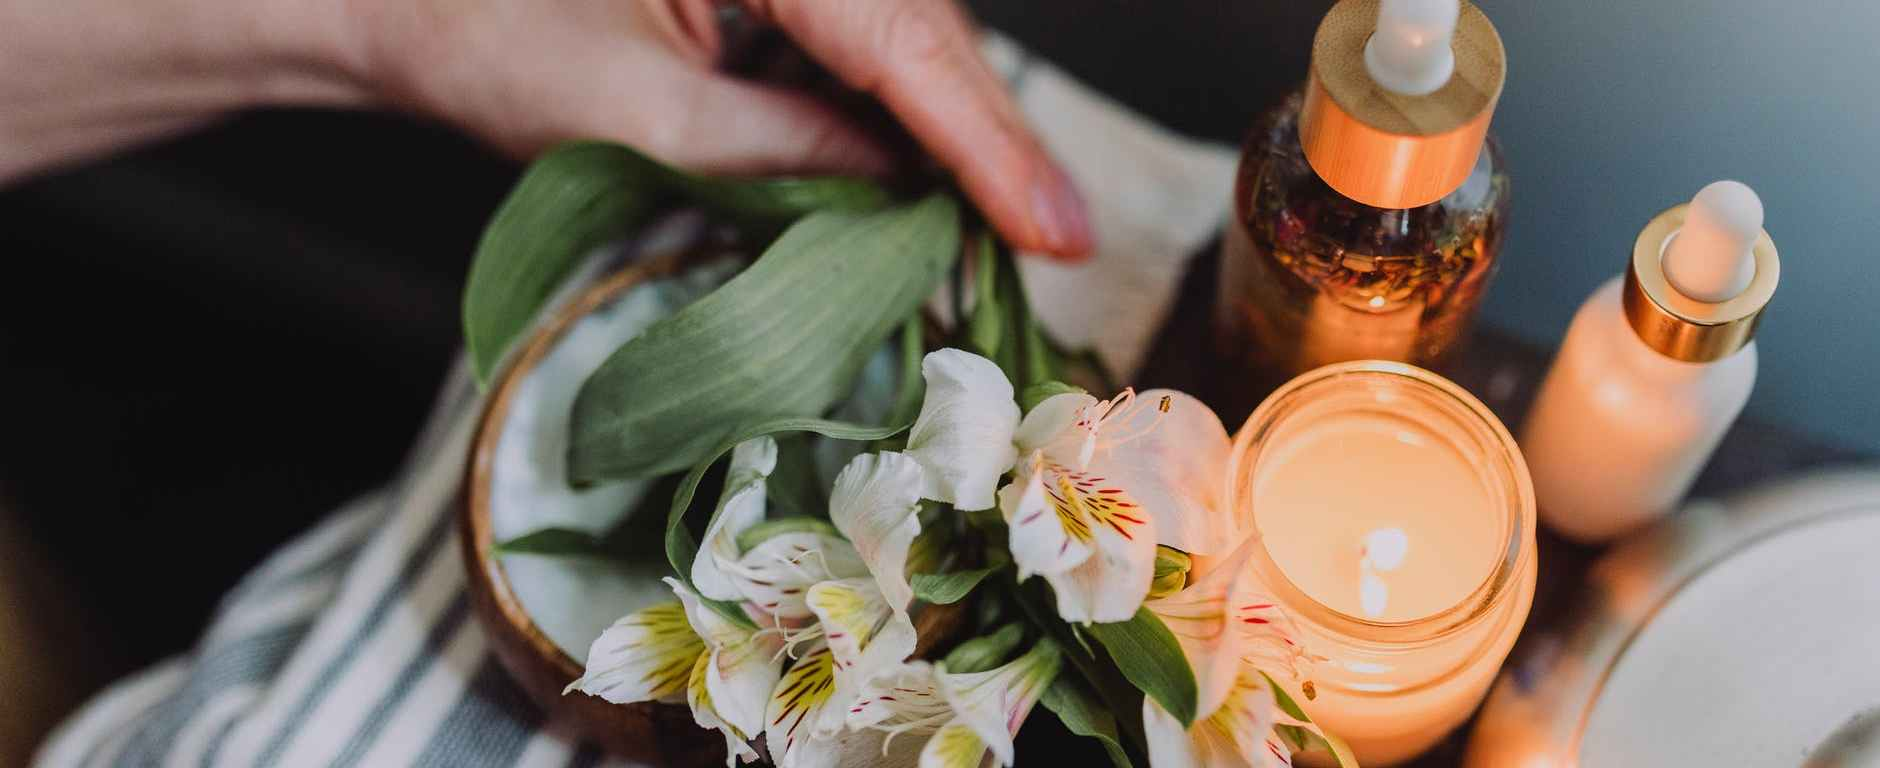 Spa image of candle and flowers with products